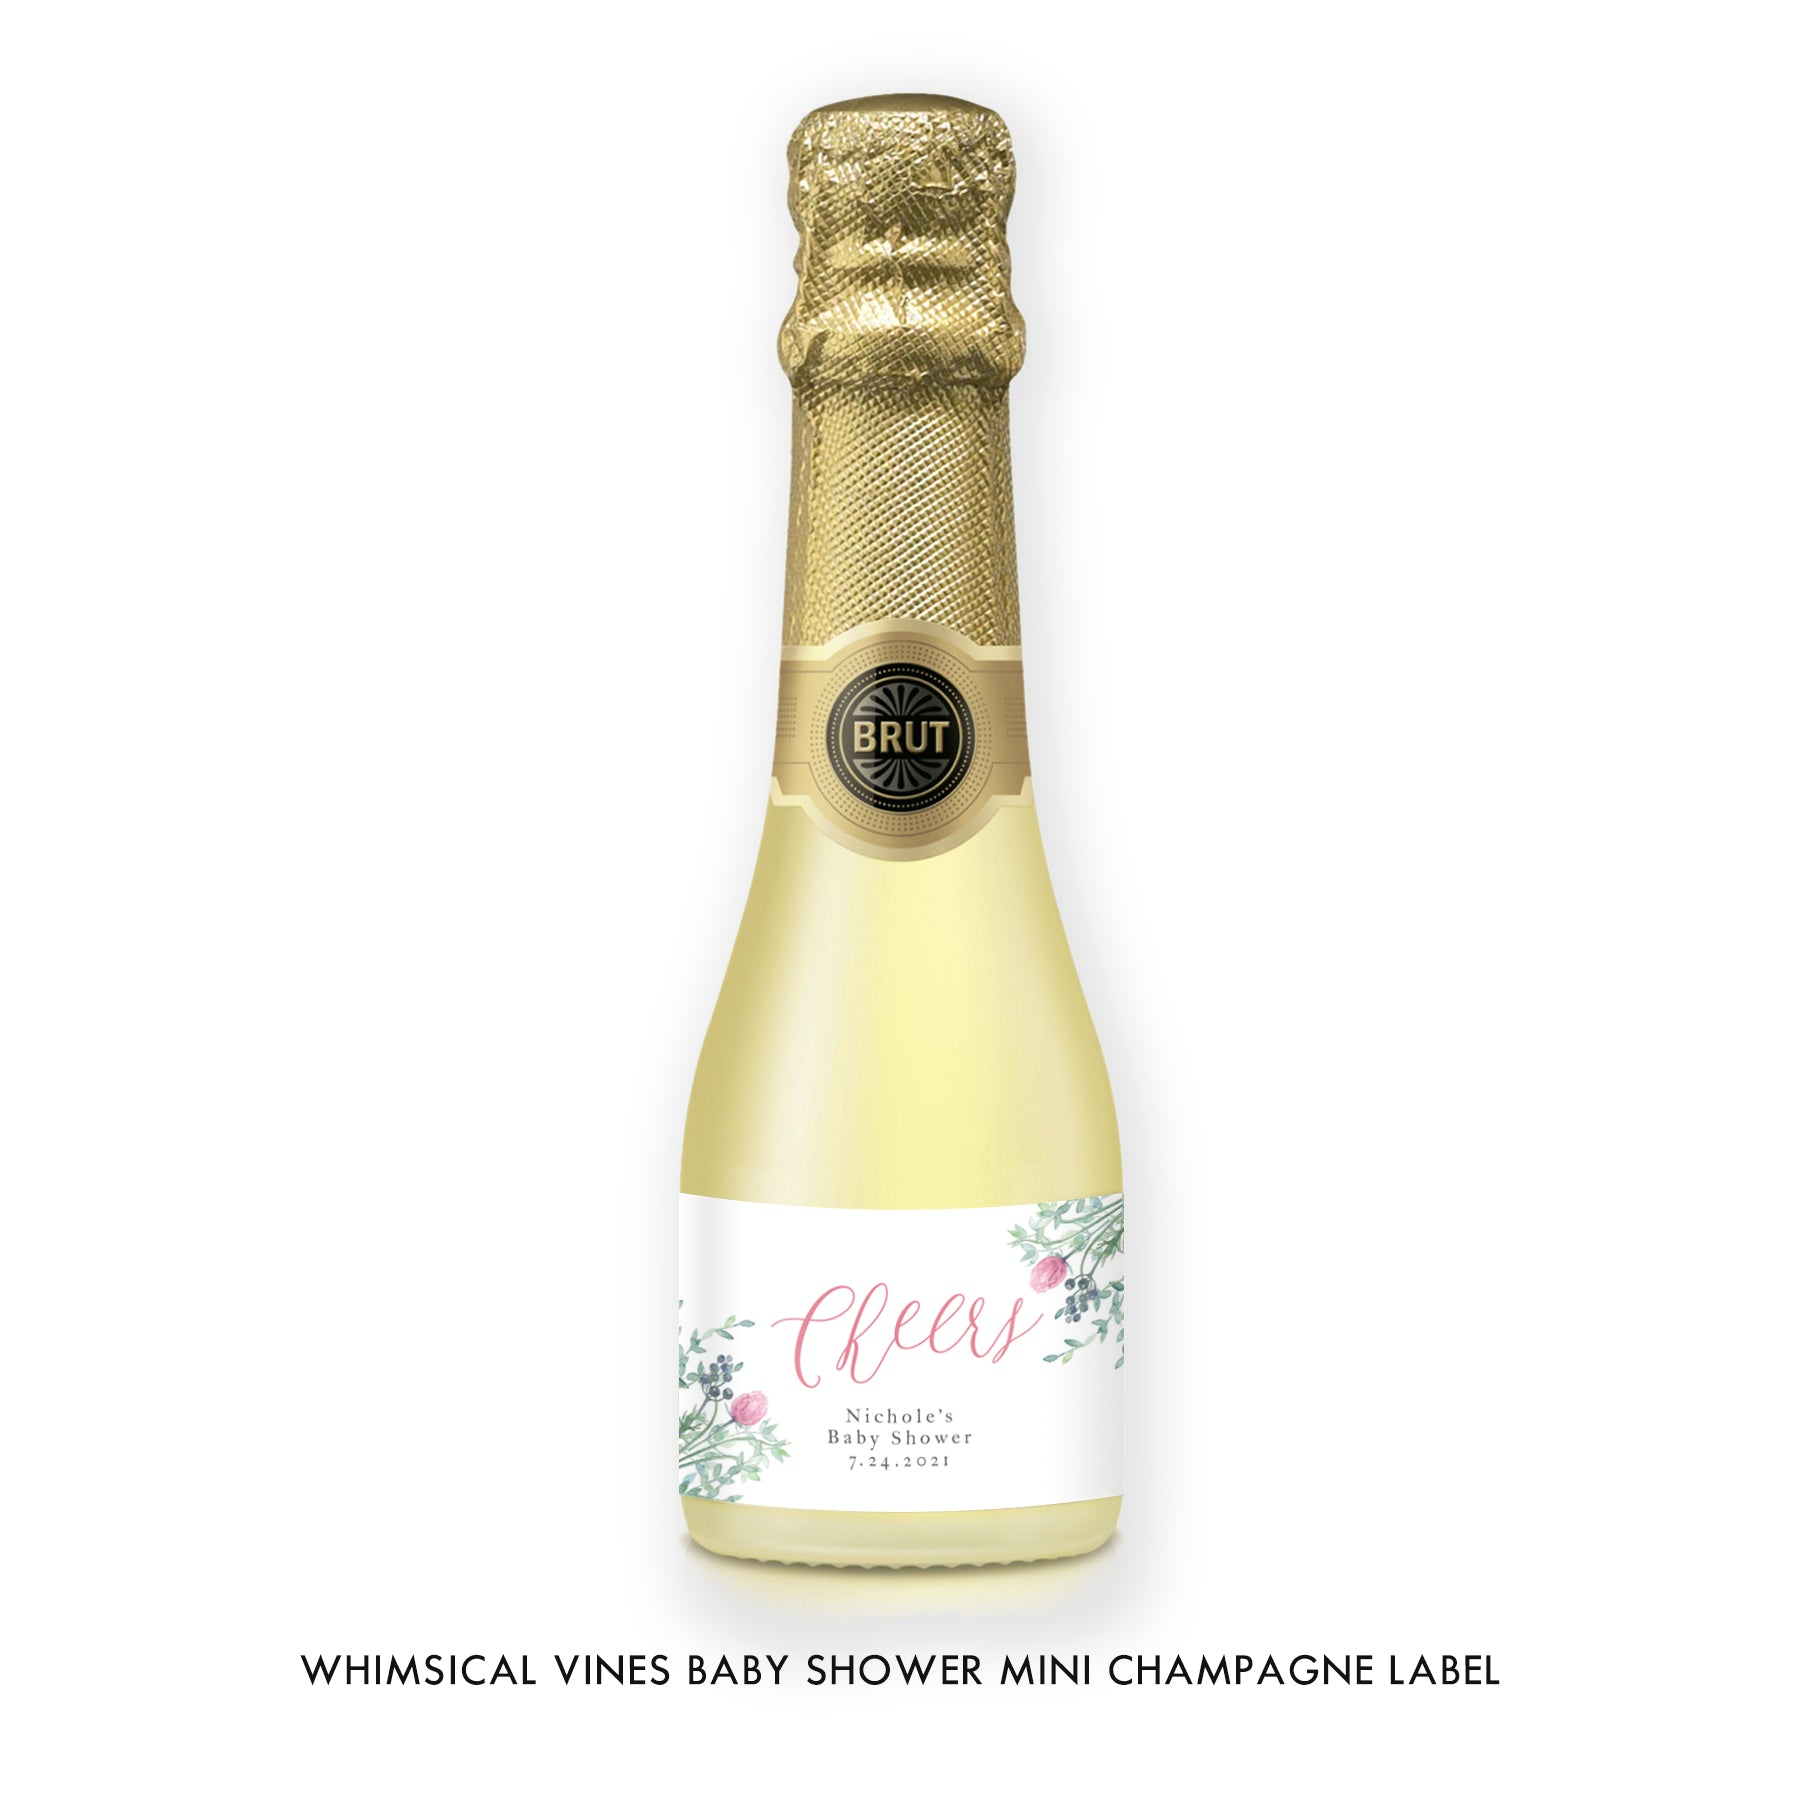 Cheers Baby Shower Mini Champagne Label